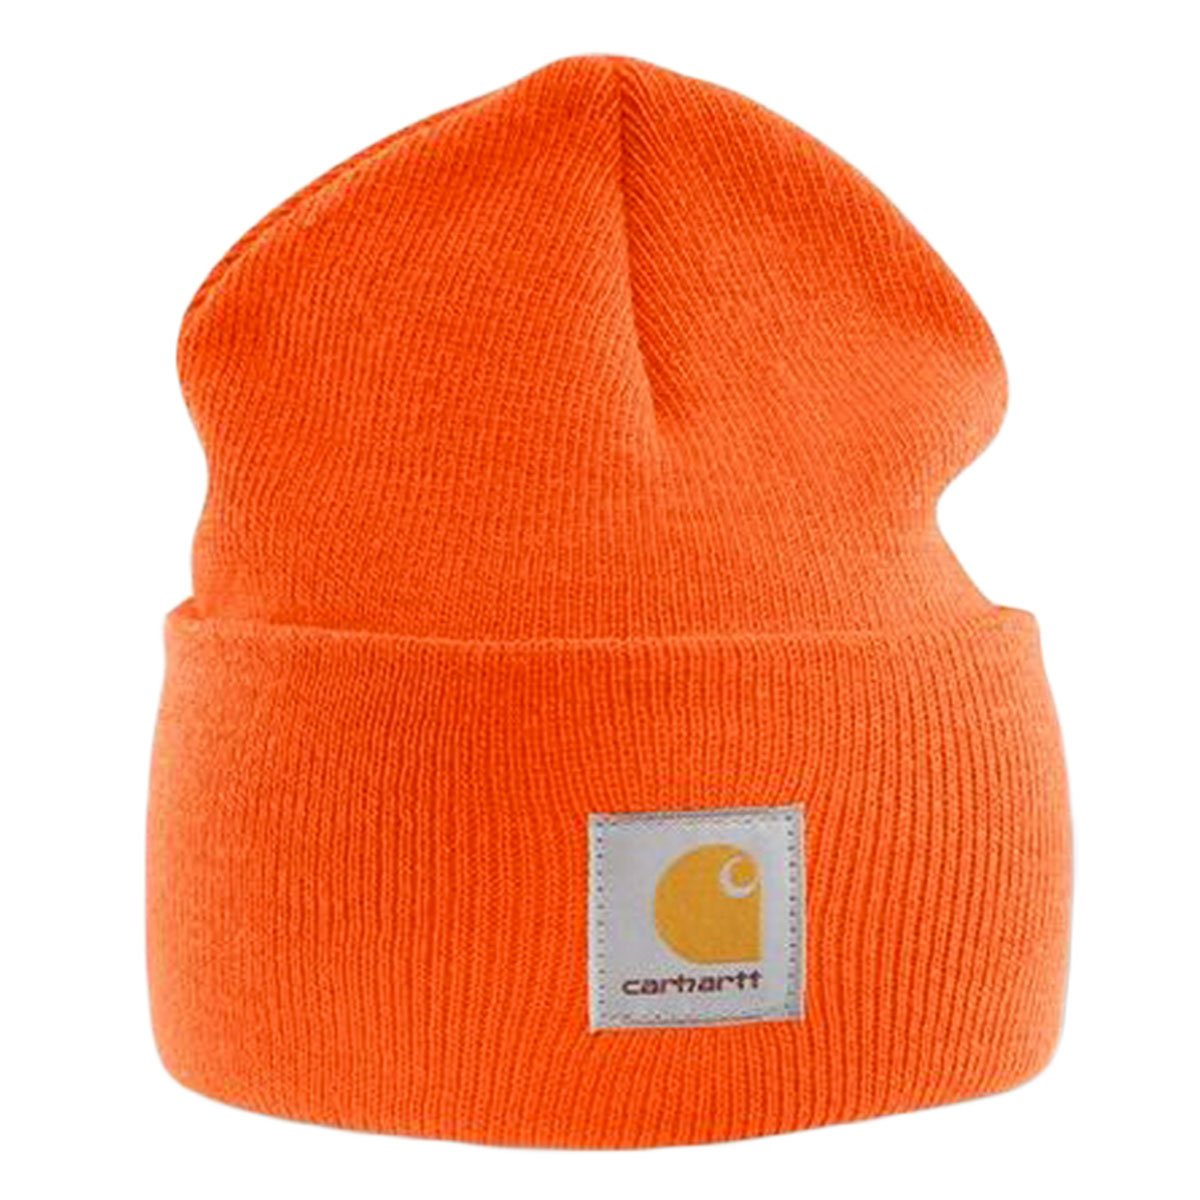 84f8f1c9c0f Carhartt - Acrylic Watch Cap - Bright Orange